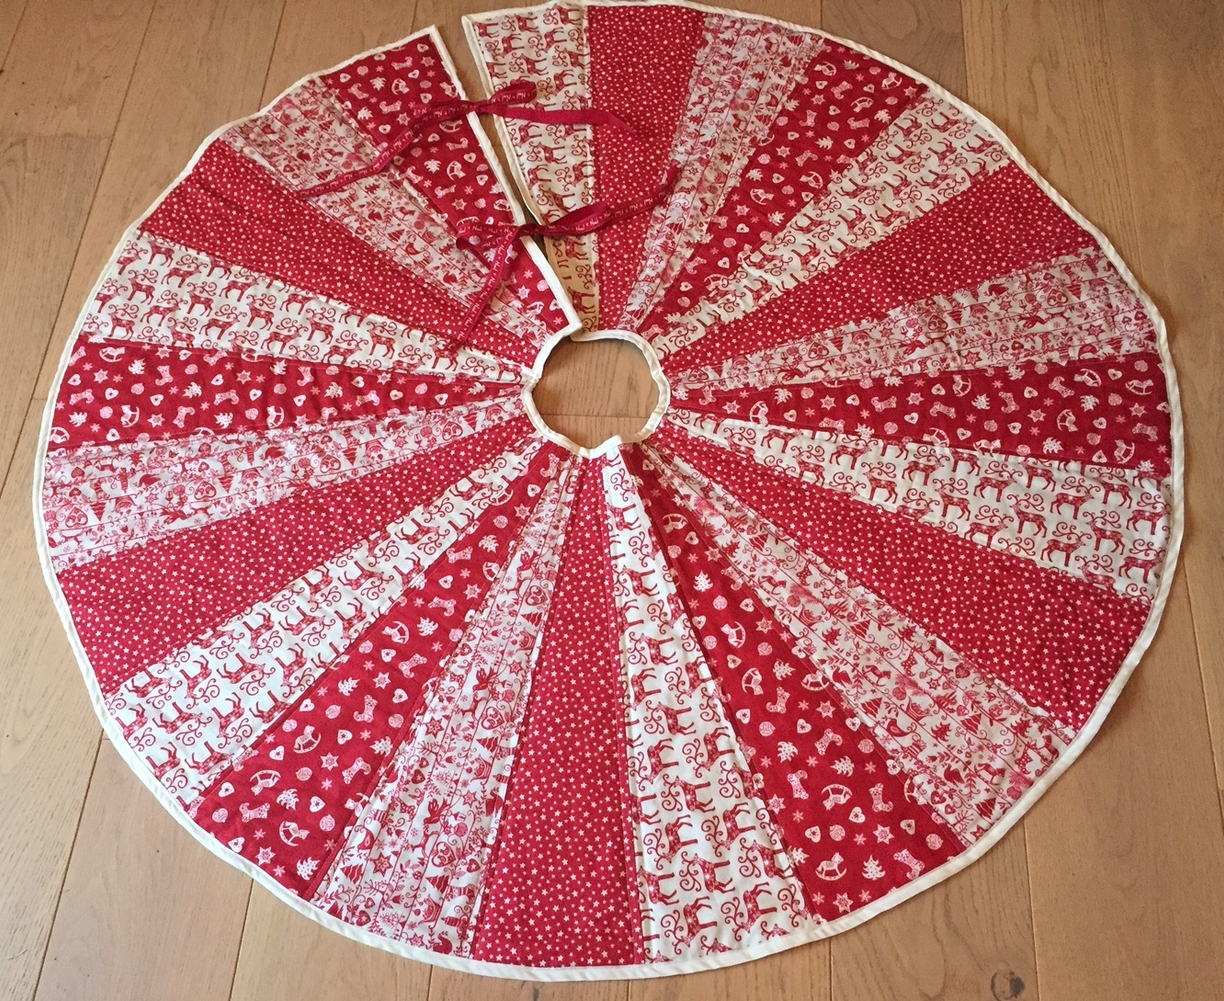 The Crafty Nomad Tree Skirt